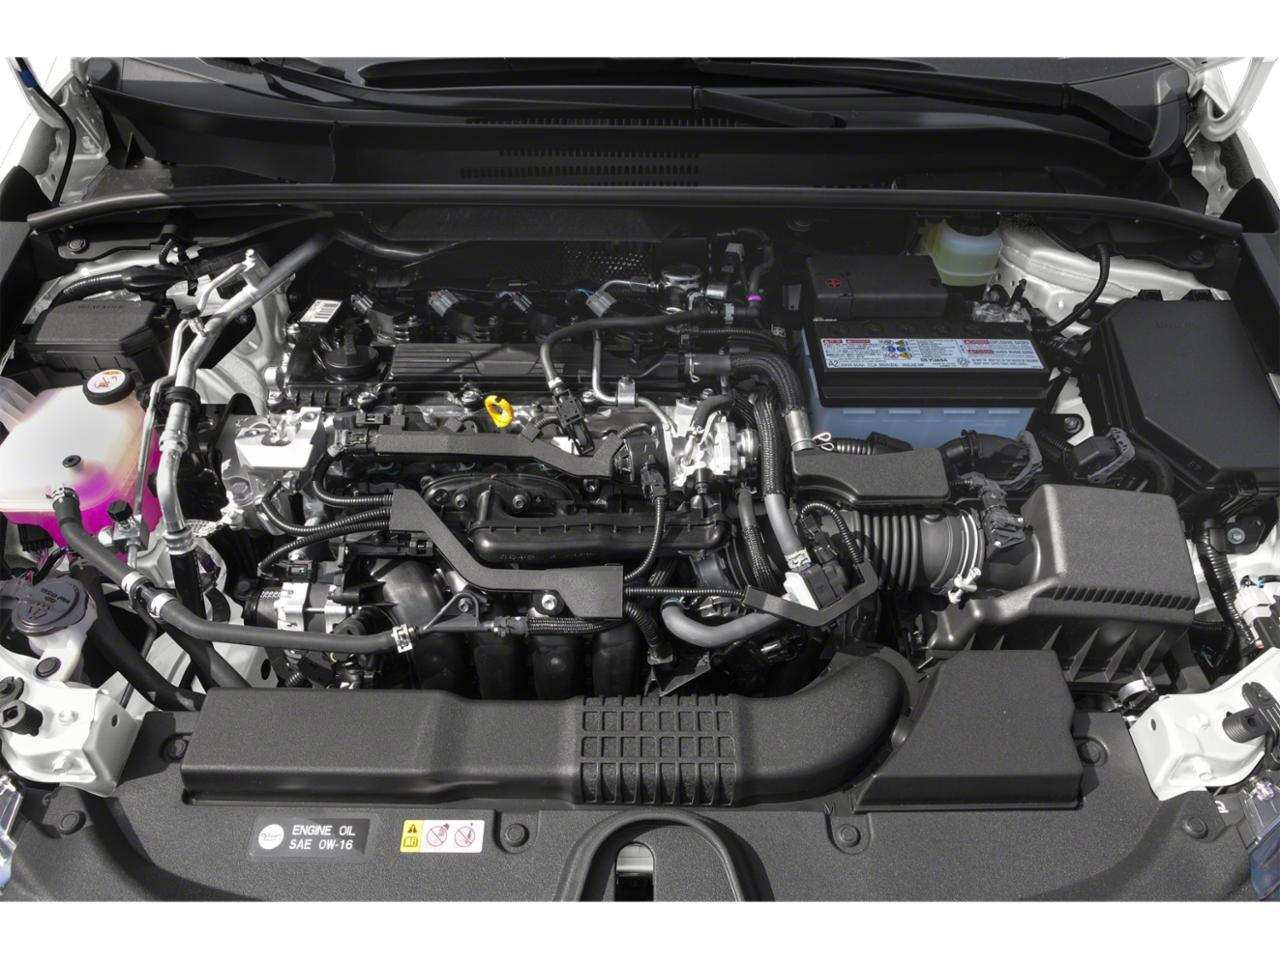 14 All New 2019 Toyota Corolla Engine History for 2019 Toyota Corolla Engine